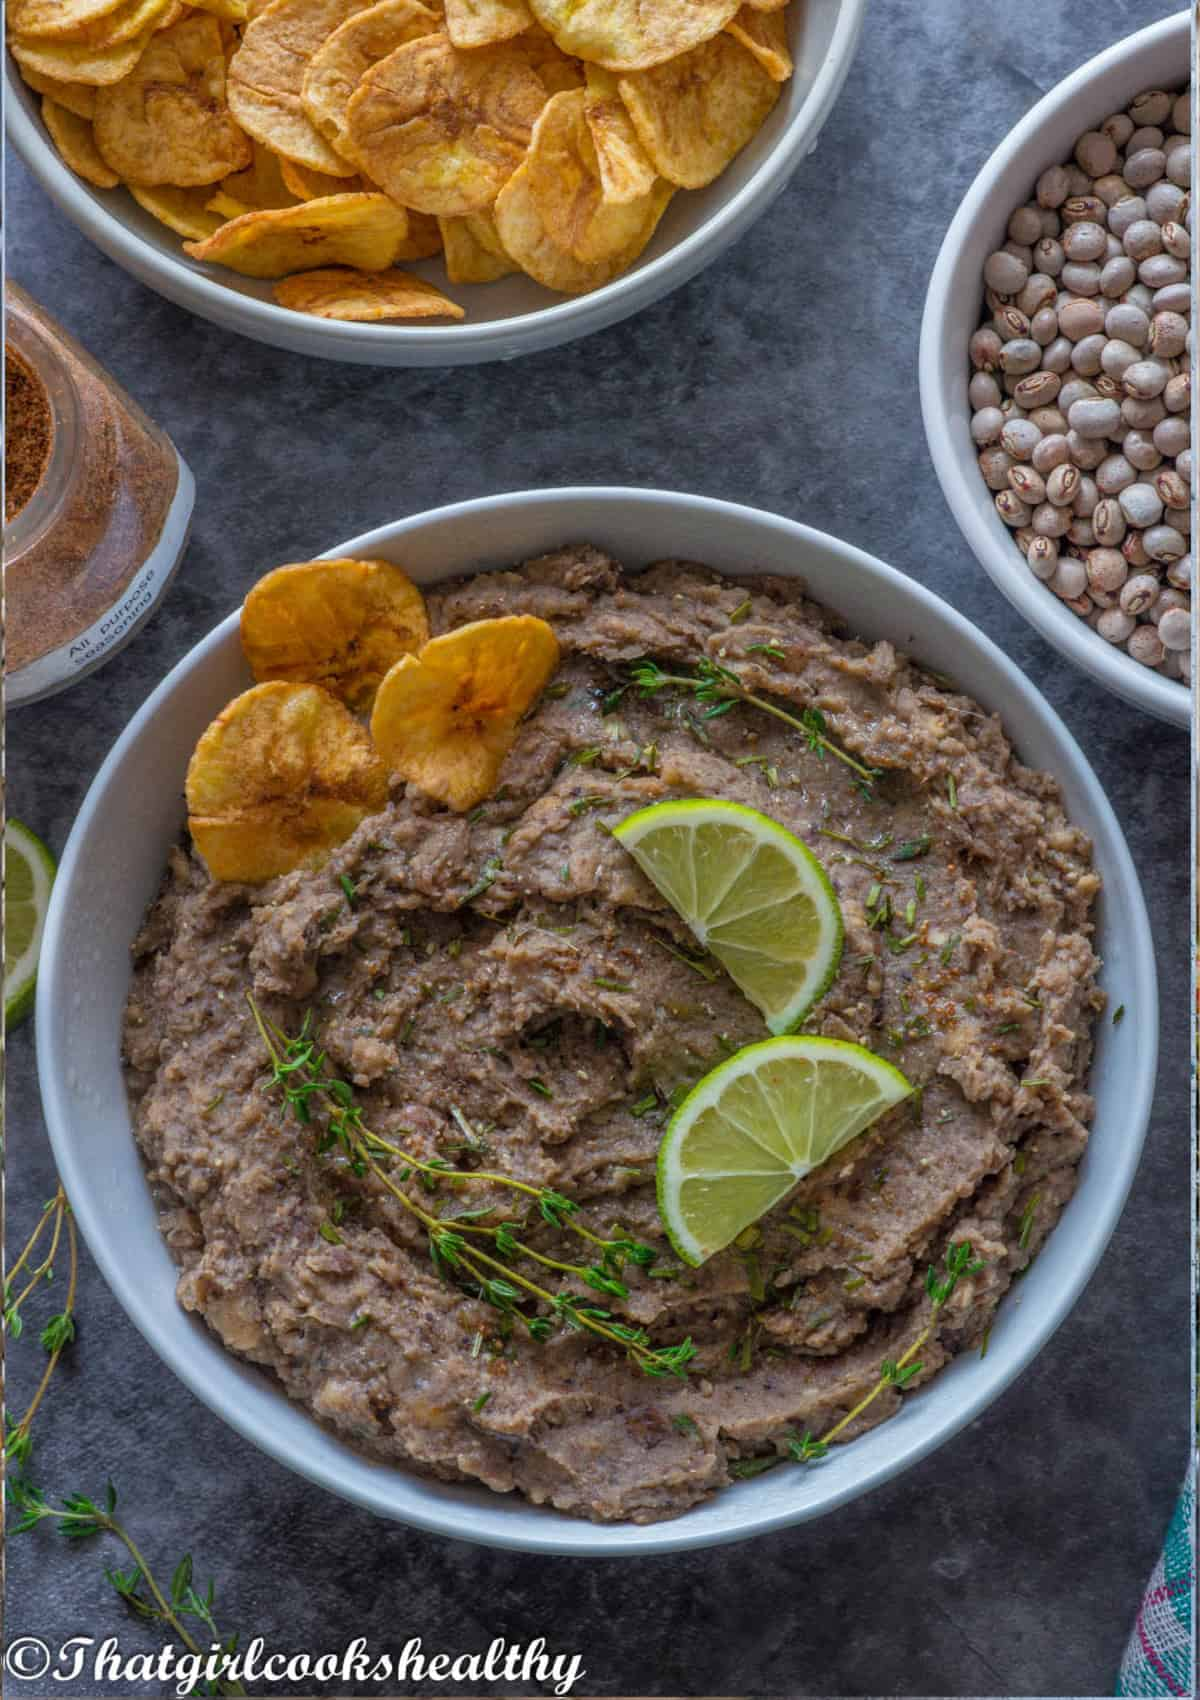 Refried gungo peas with garnish and plantain chips